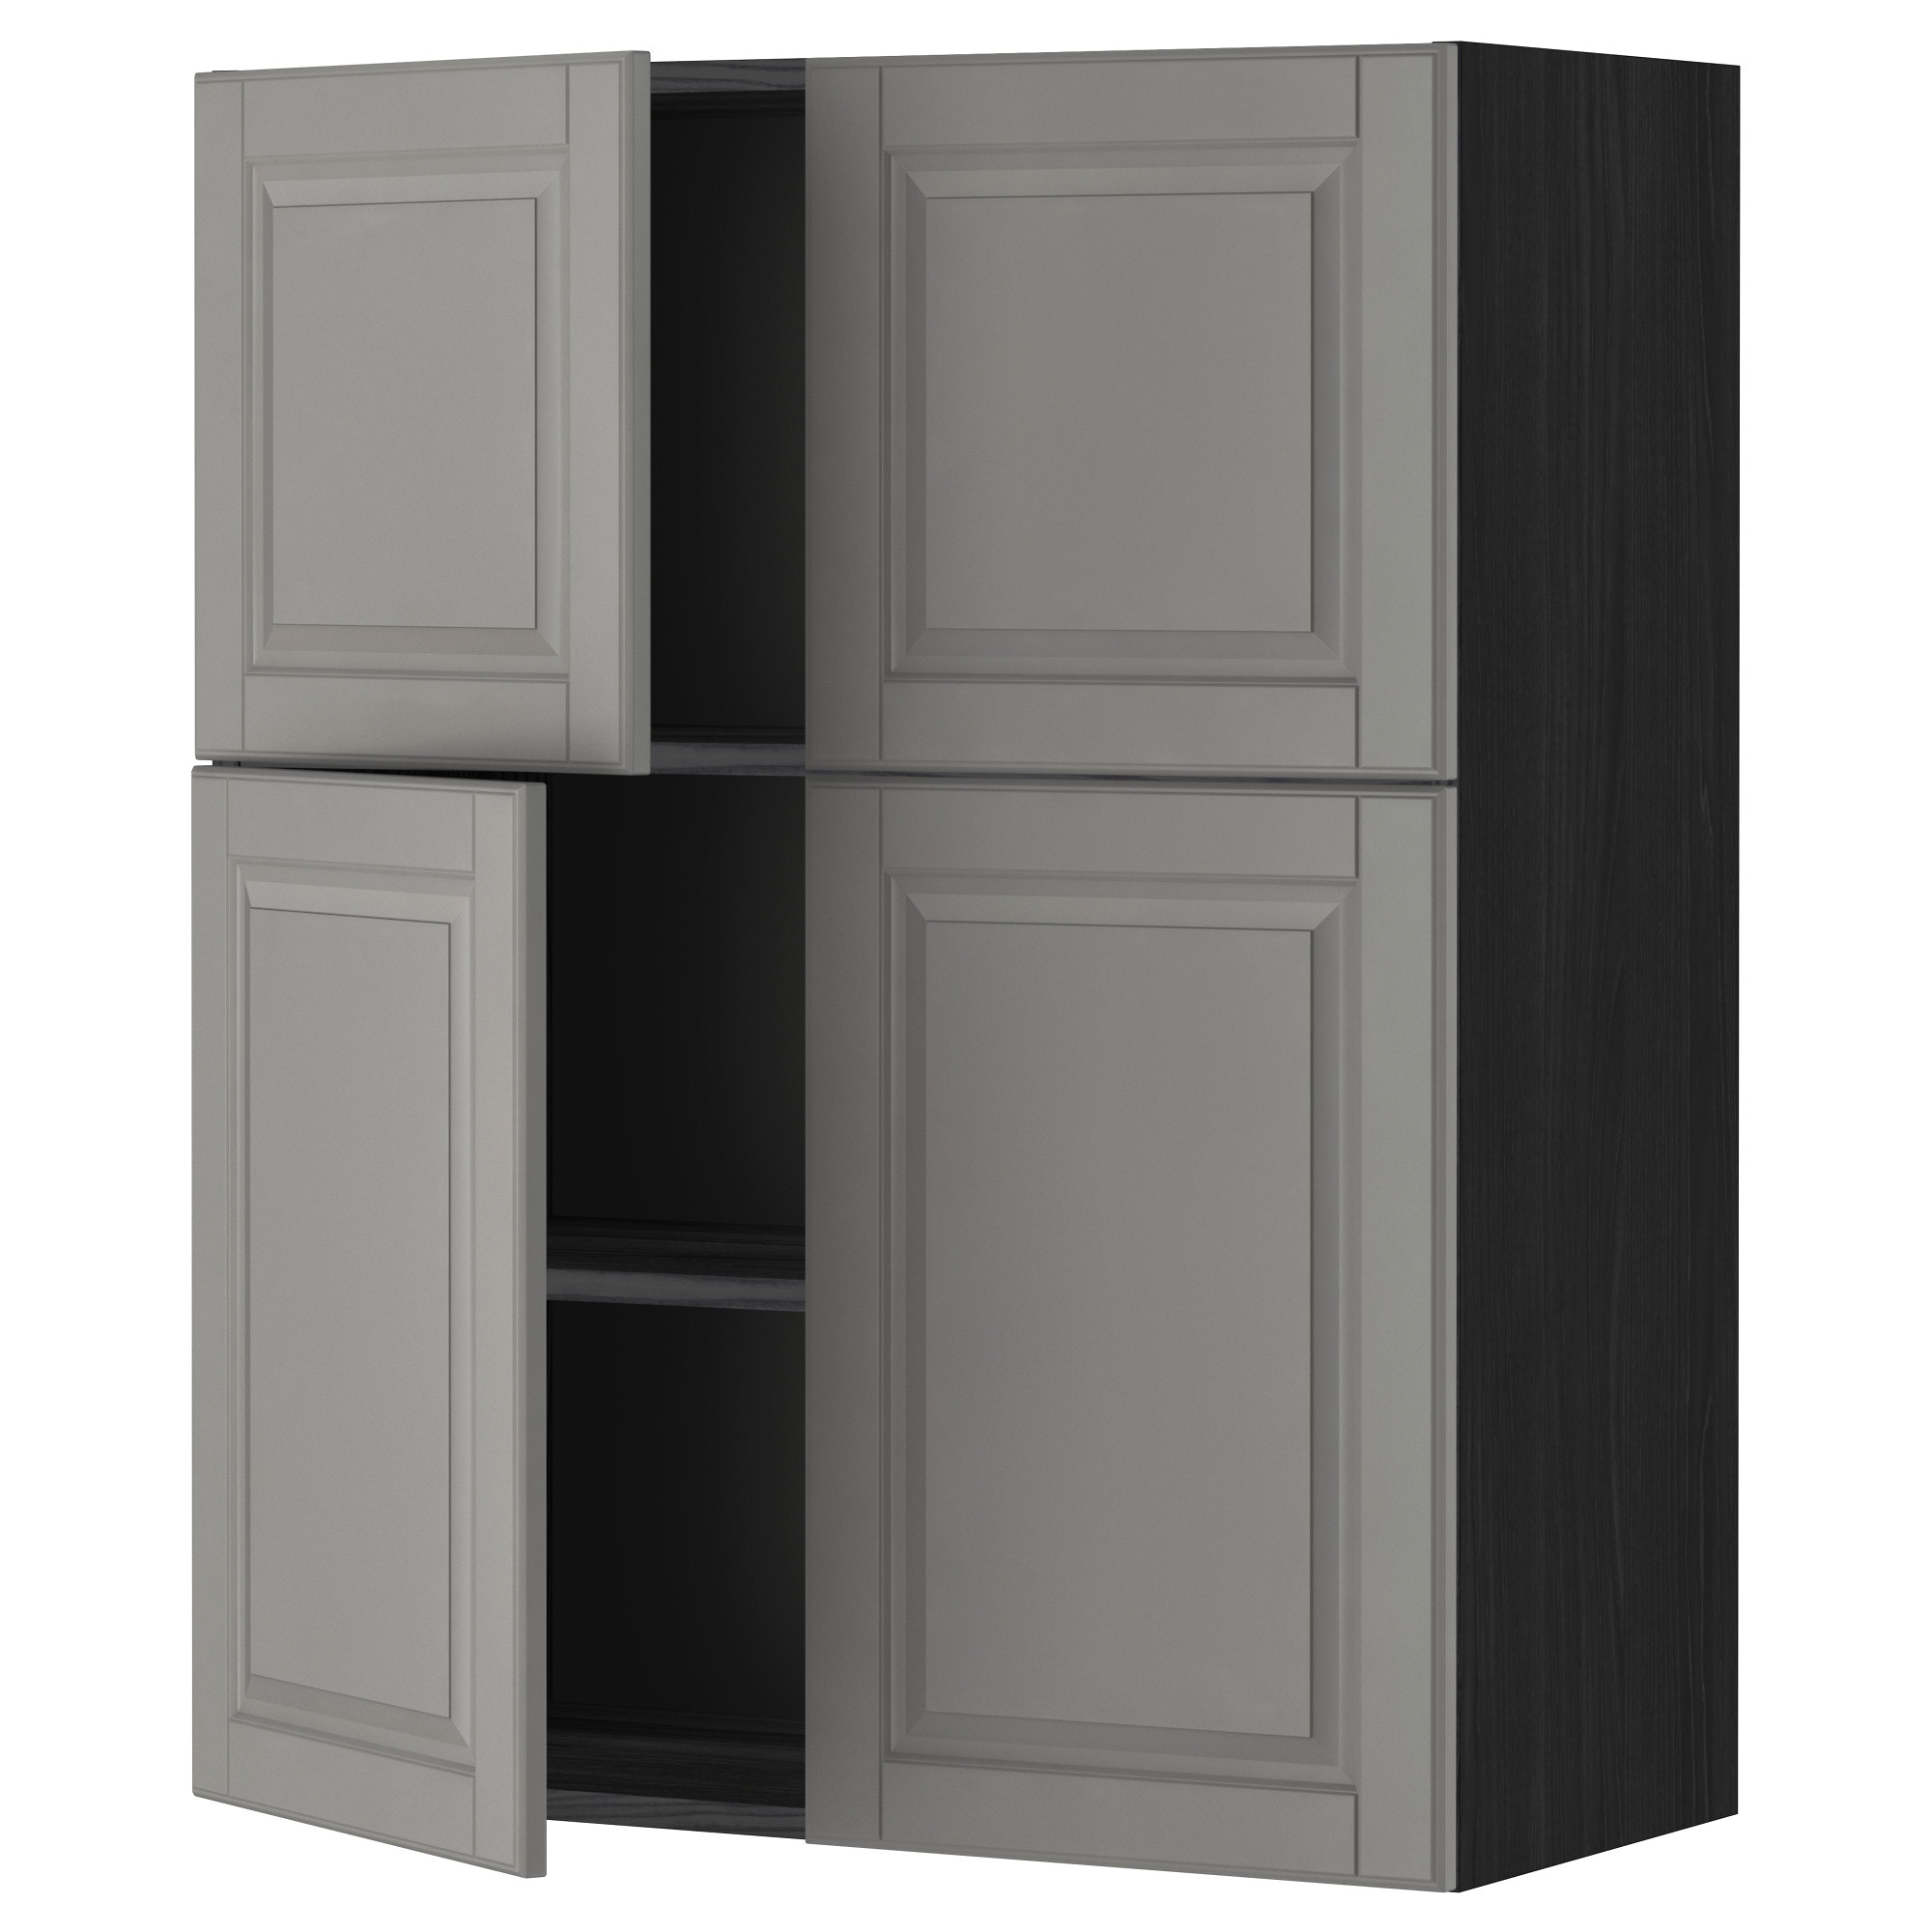 Double Swinging Kitchen Doors Kitchen Wall Cabinets Cupboards Ikea